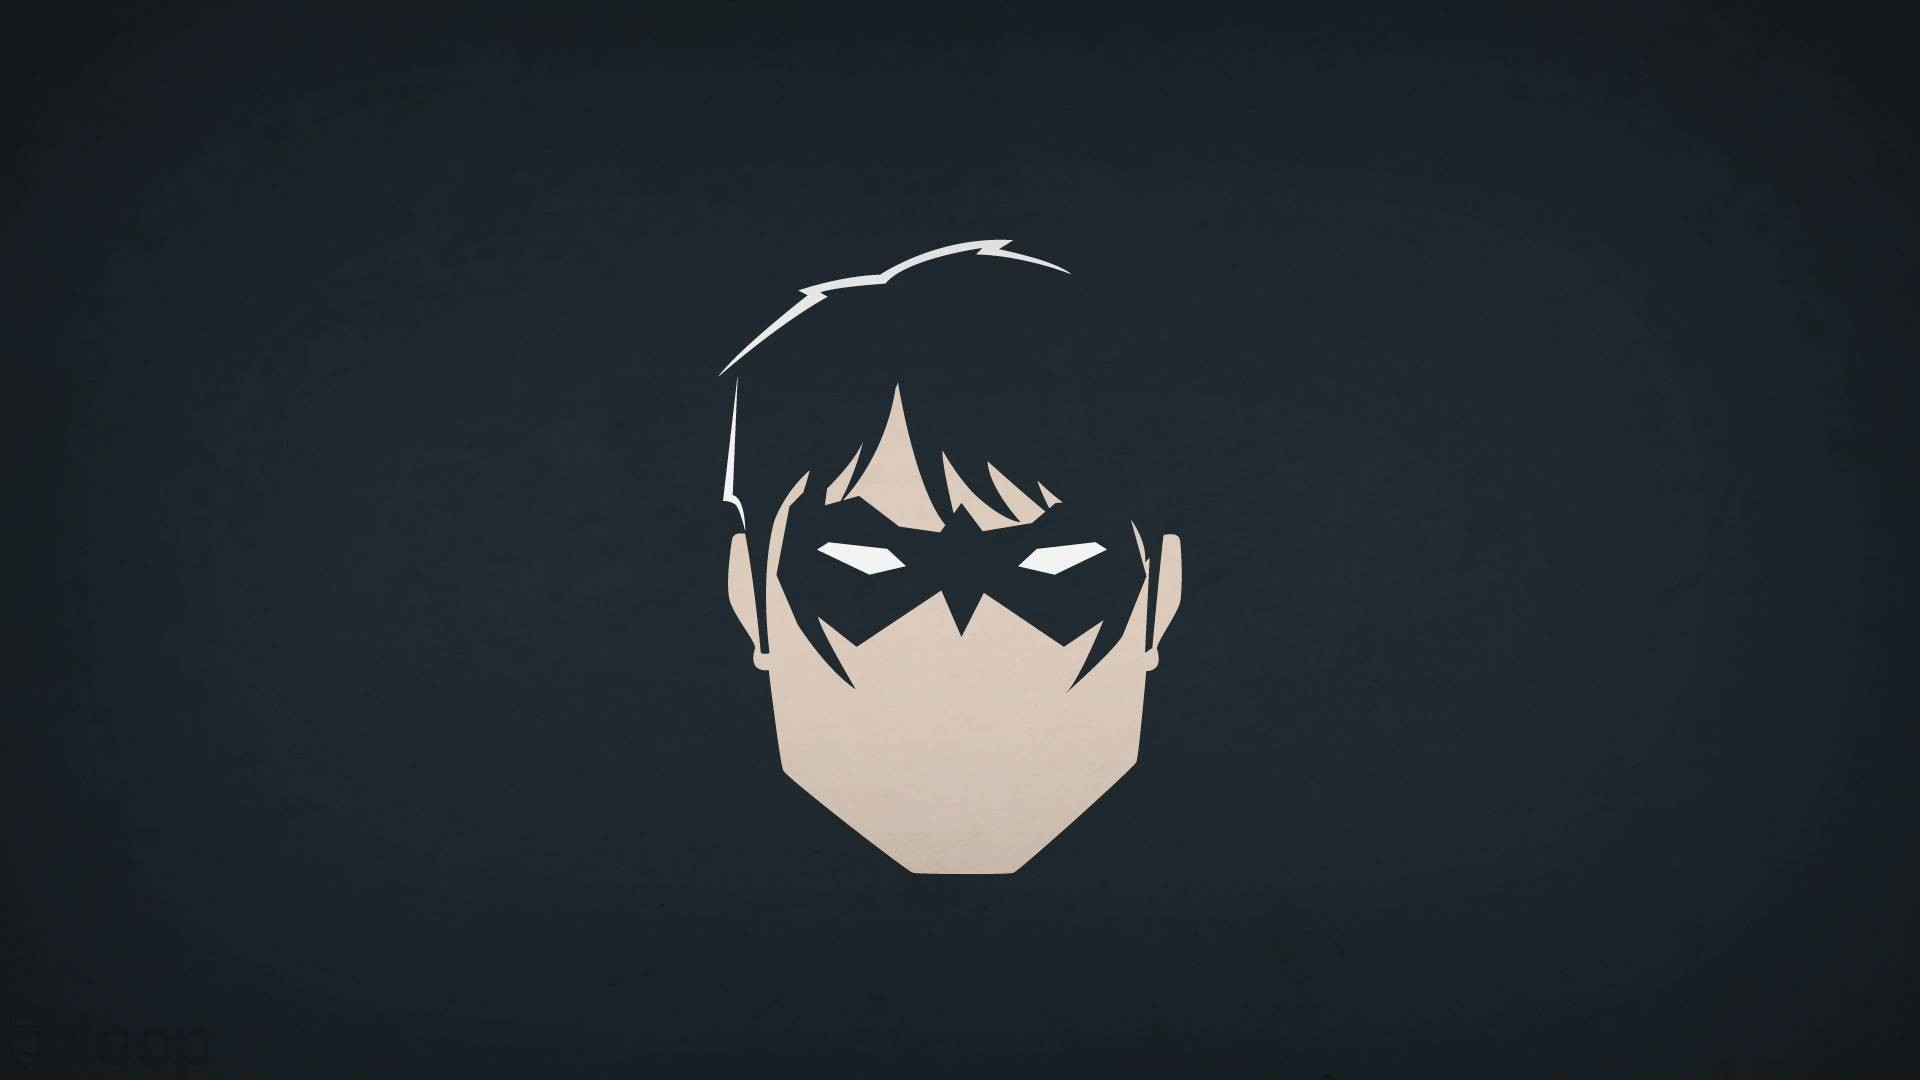 1920x1080 Wallpapers For > Nightwing Wallpaper